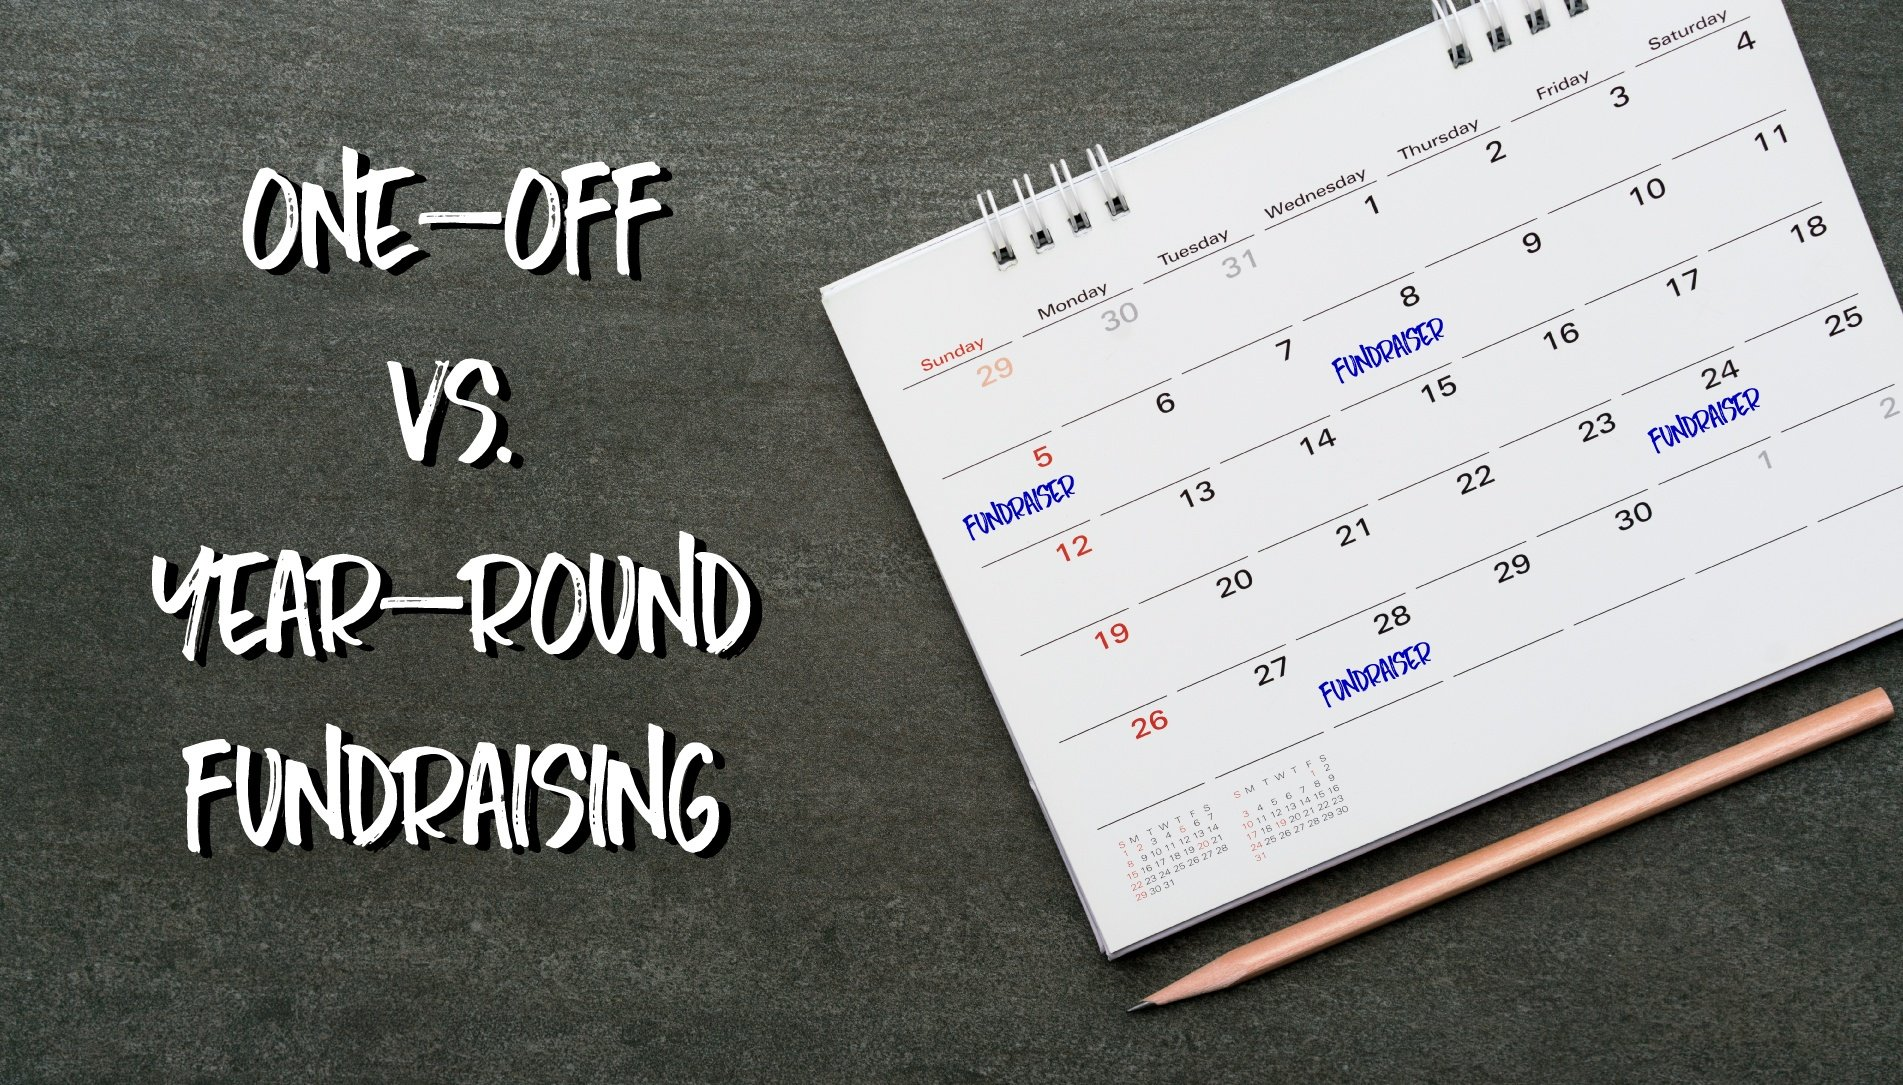 Comparing One-Off and Year-Round Fundraisers